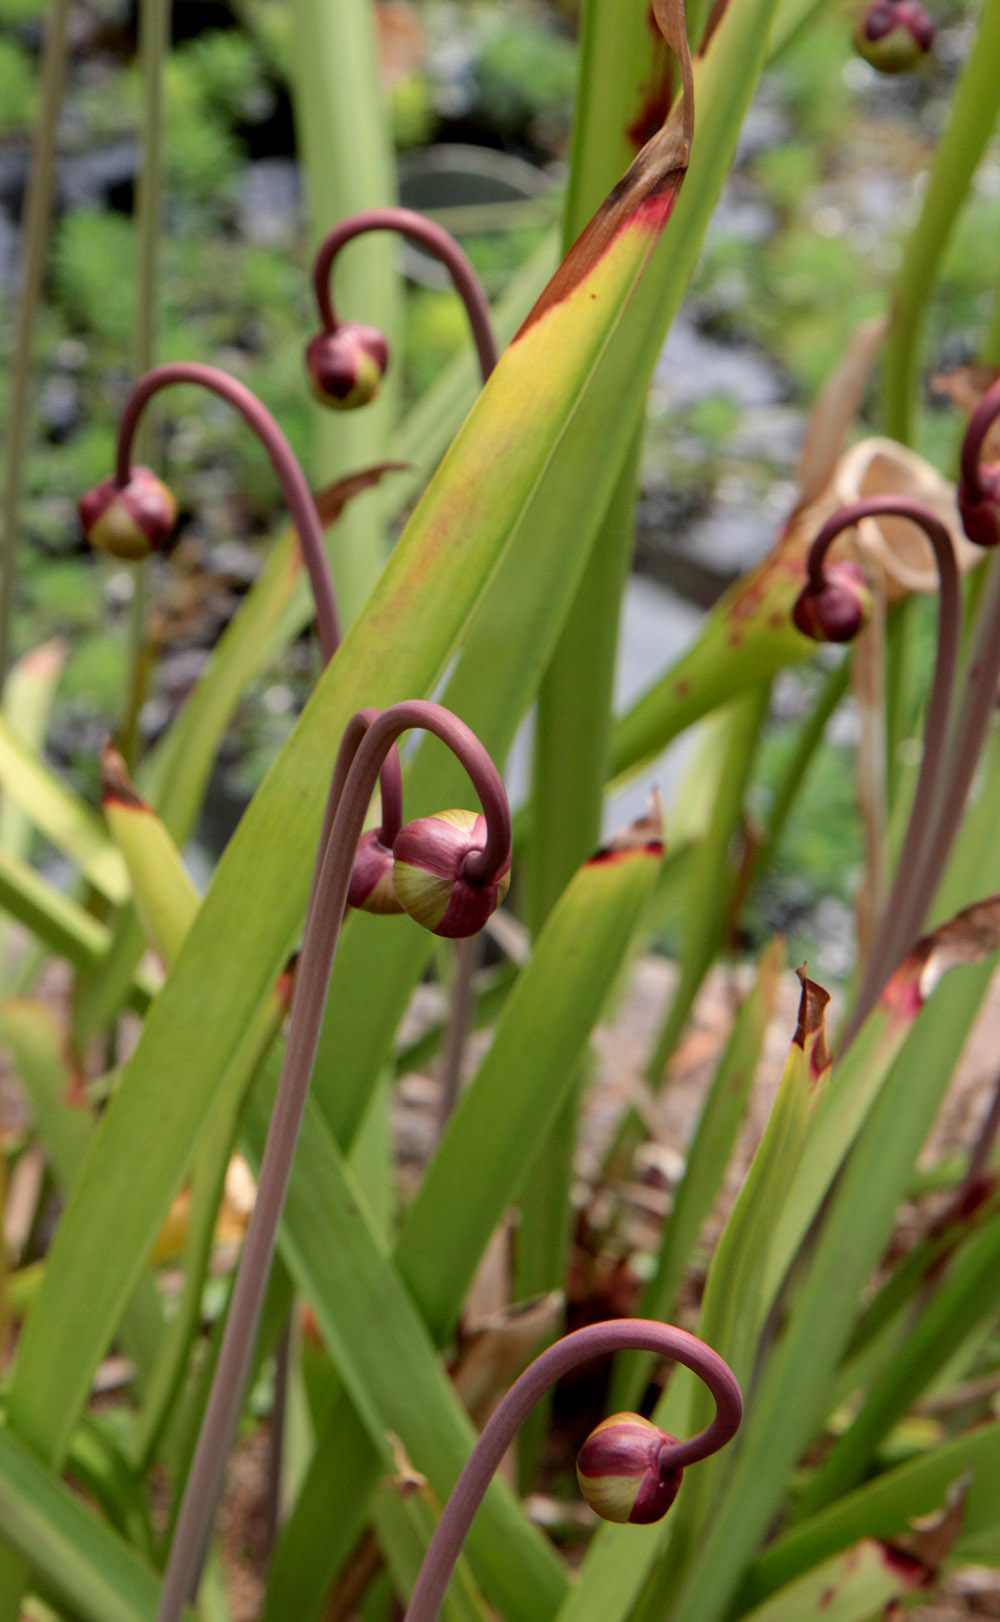 pitcher plant buds